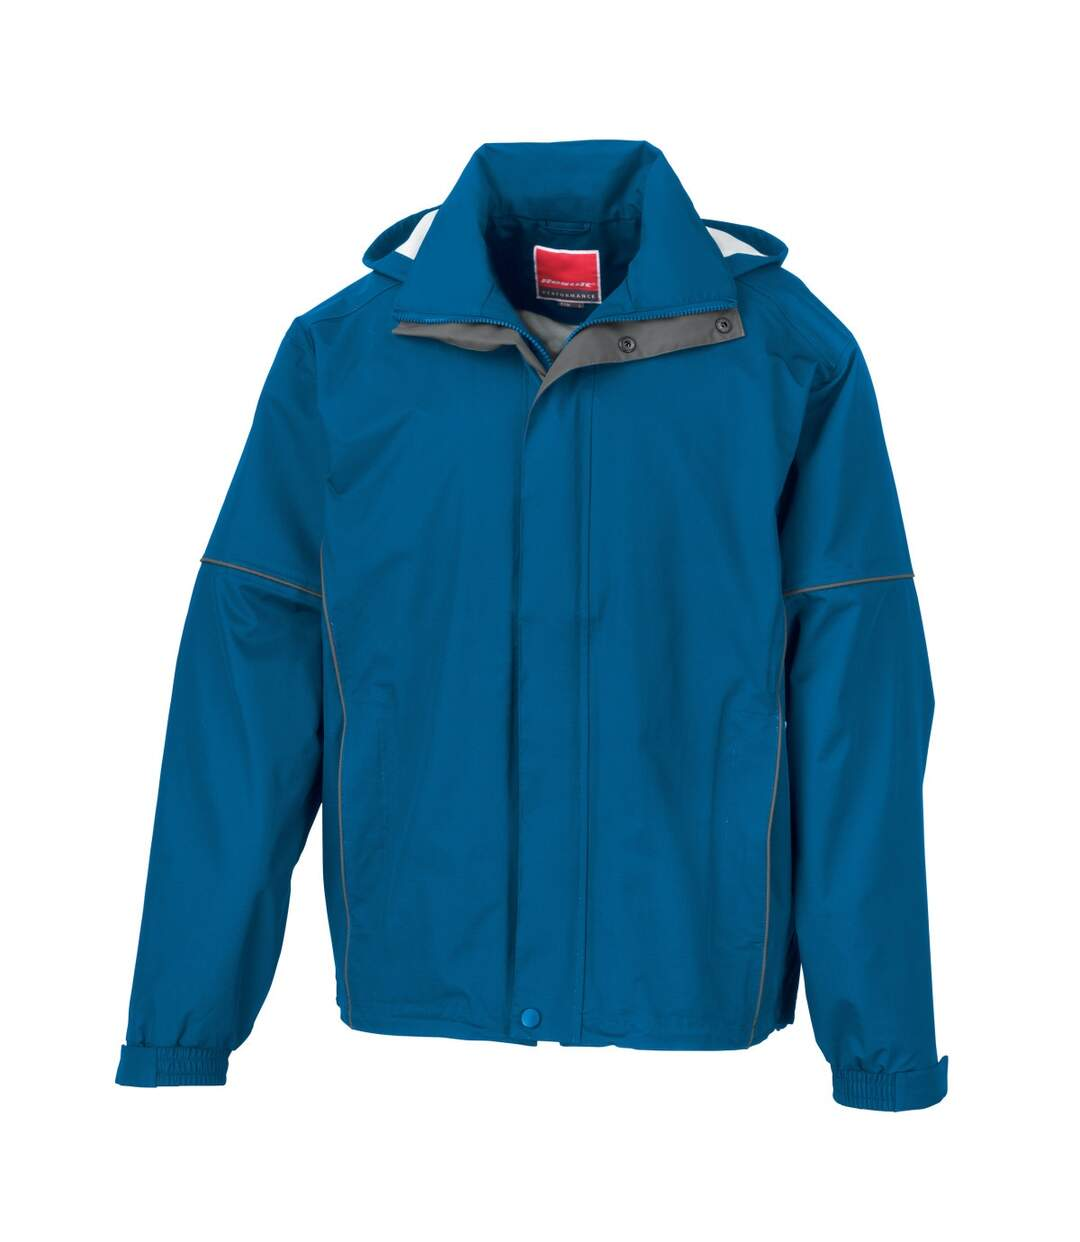 Result Mens Urban Outdoor Fell Lightweight Technical Jacket (Waterproof & Windproof) (Royal) - UTBC3050